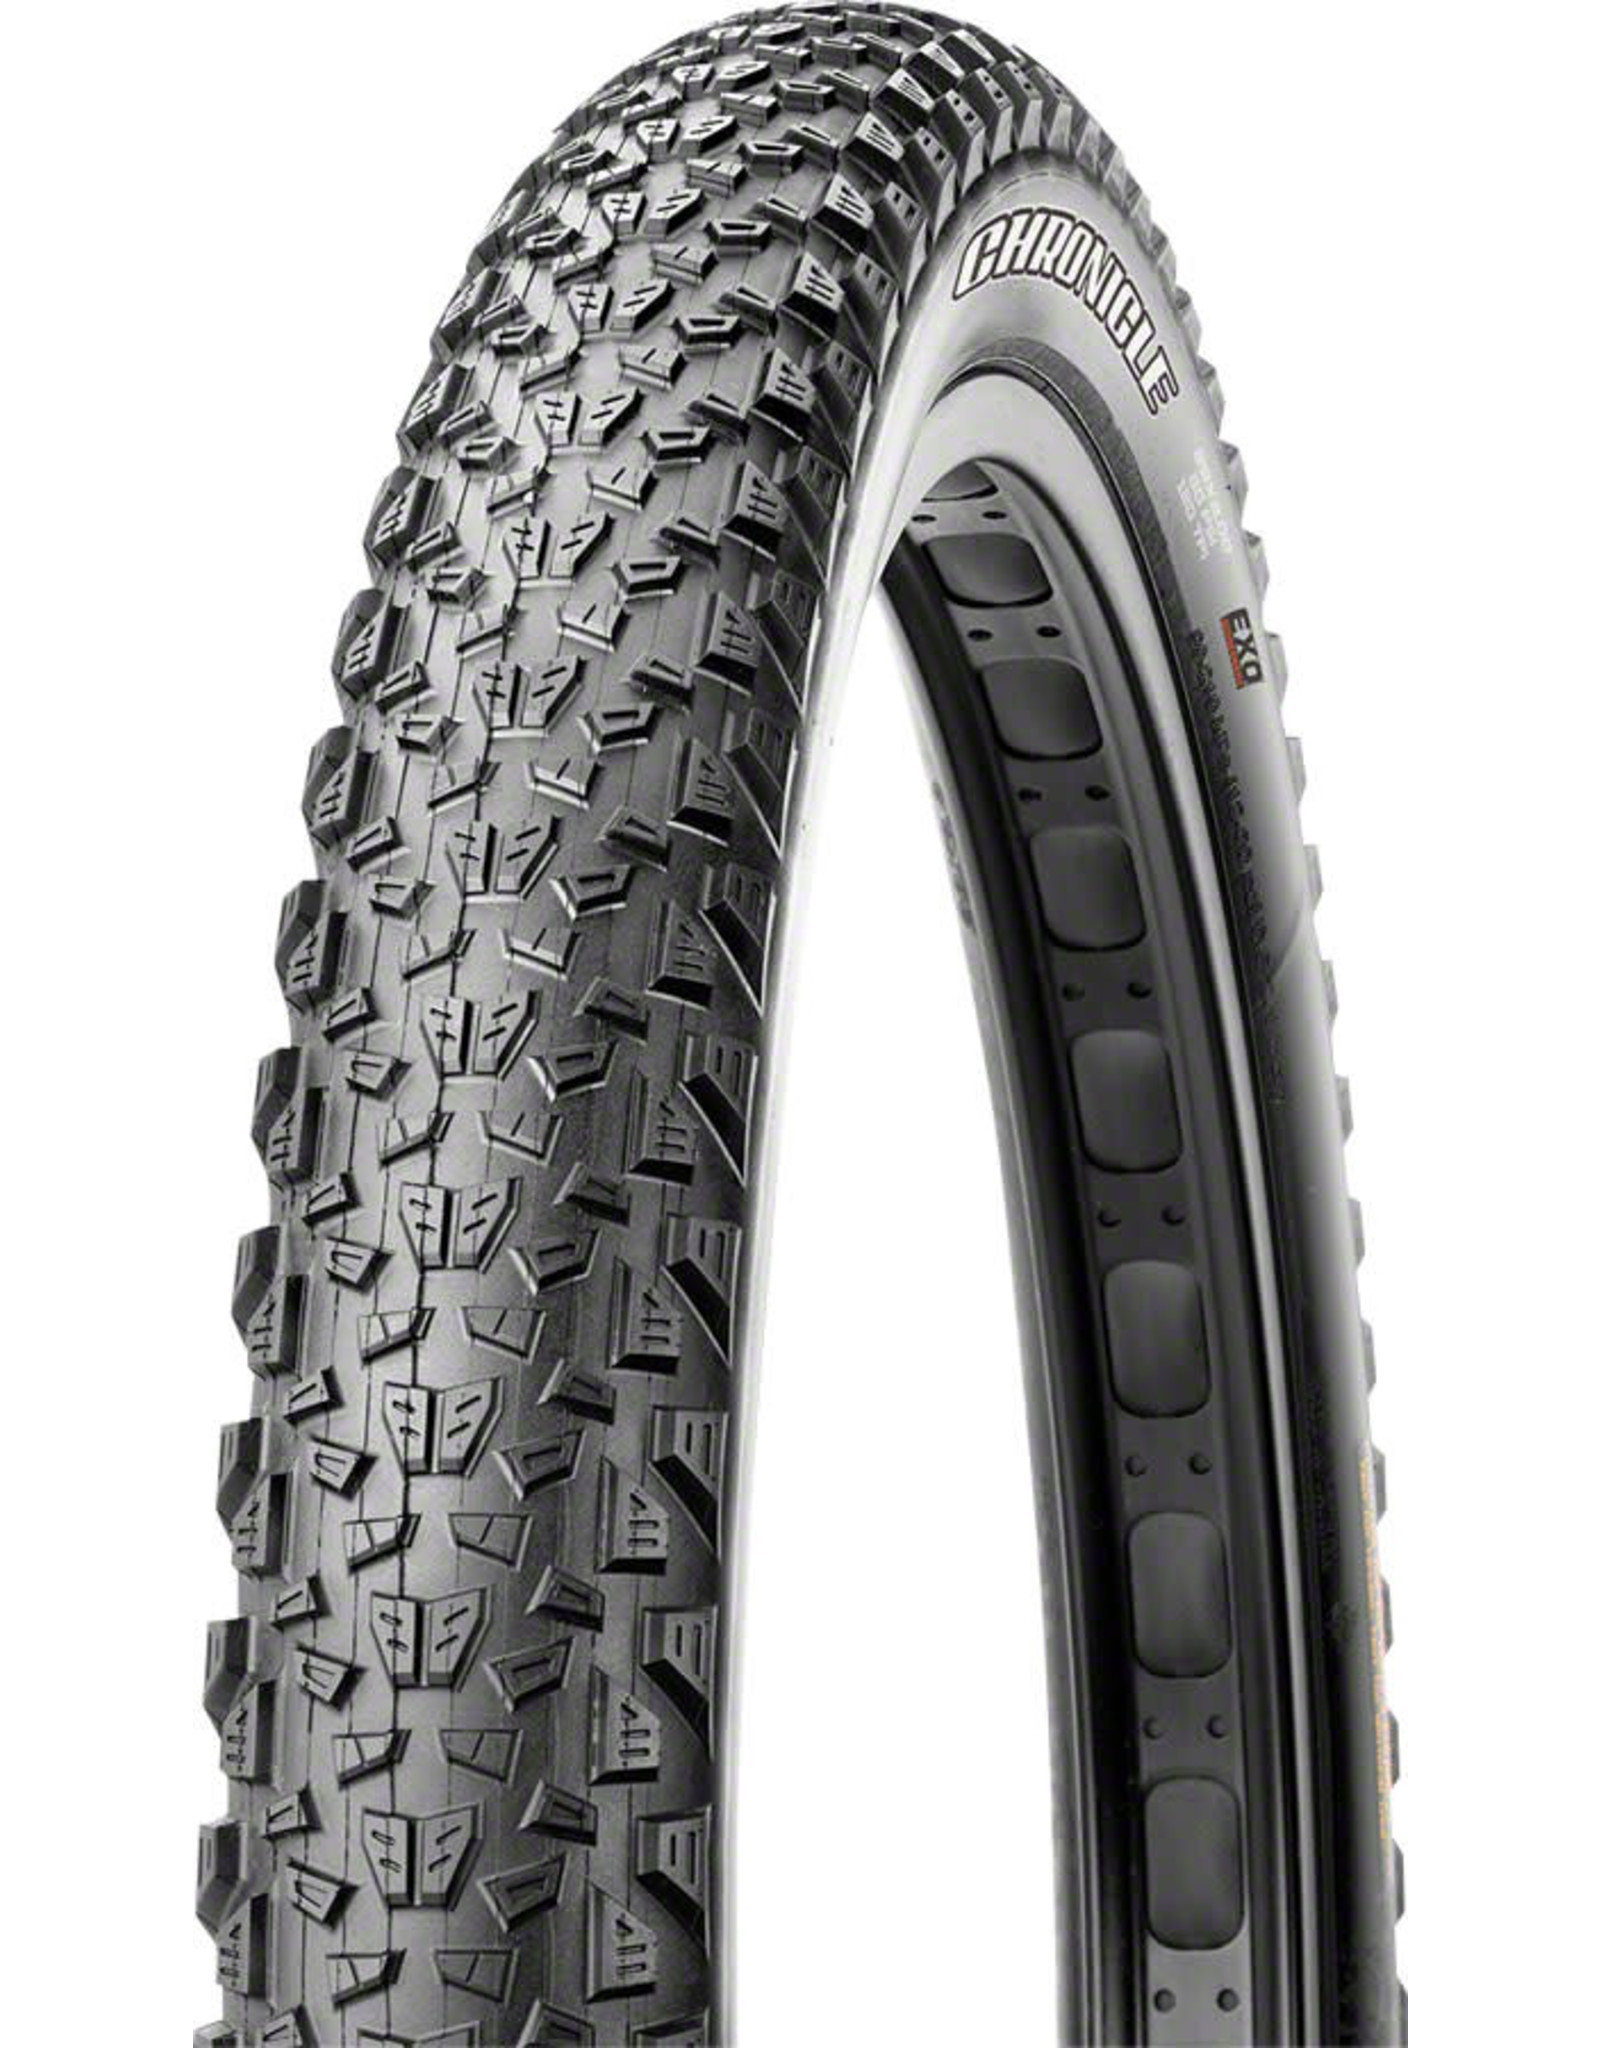 Maxxis Maxxis Chronicle 27.5+ Tire 27.5 x 3.0, 120 tpi, Dual Compound, EXO puncture protection, Tubeless-ready: Black